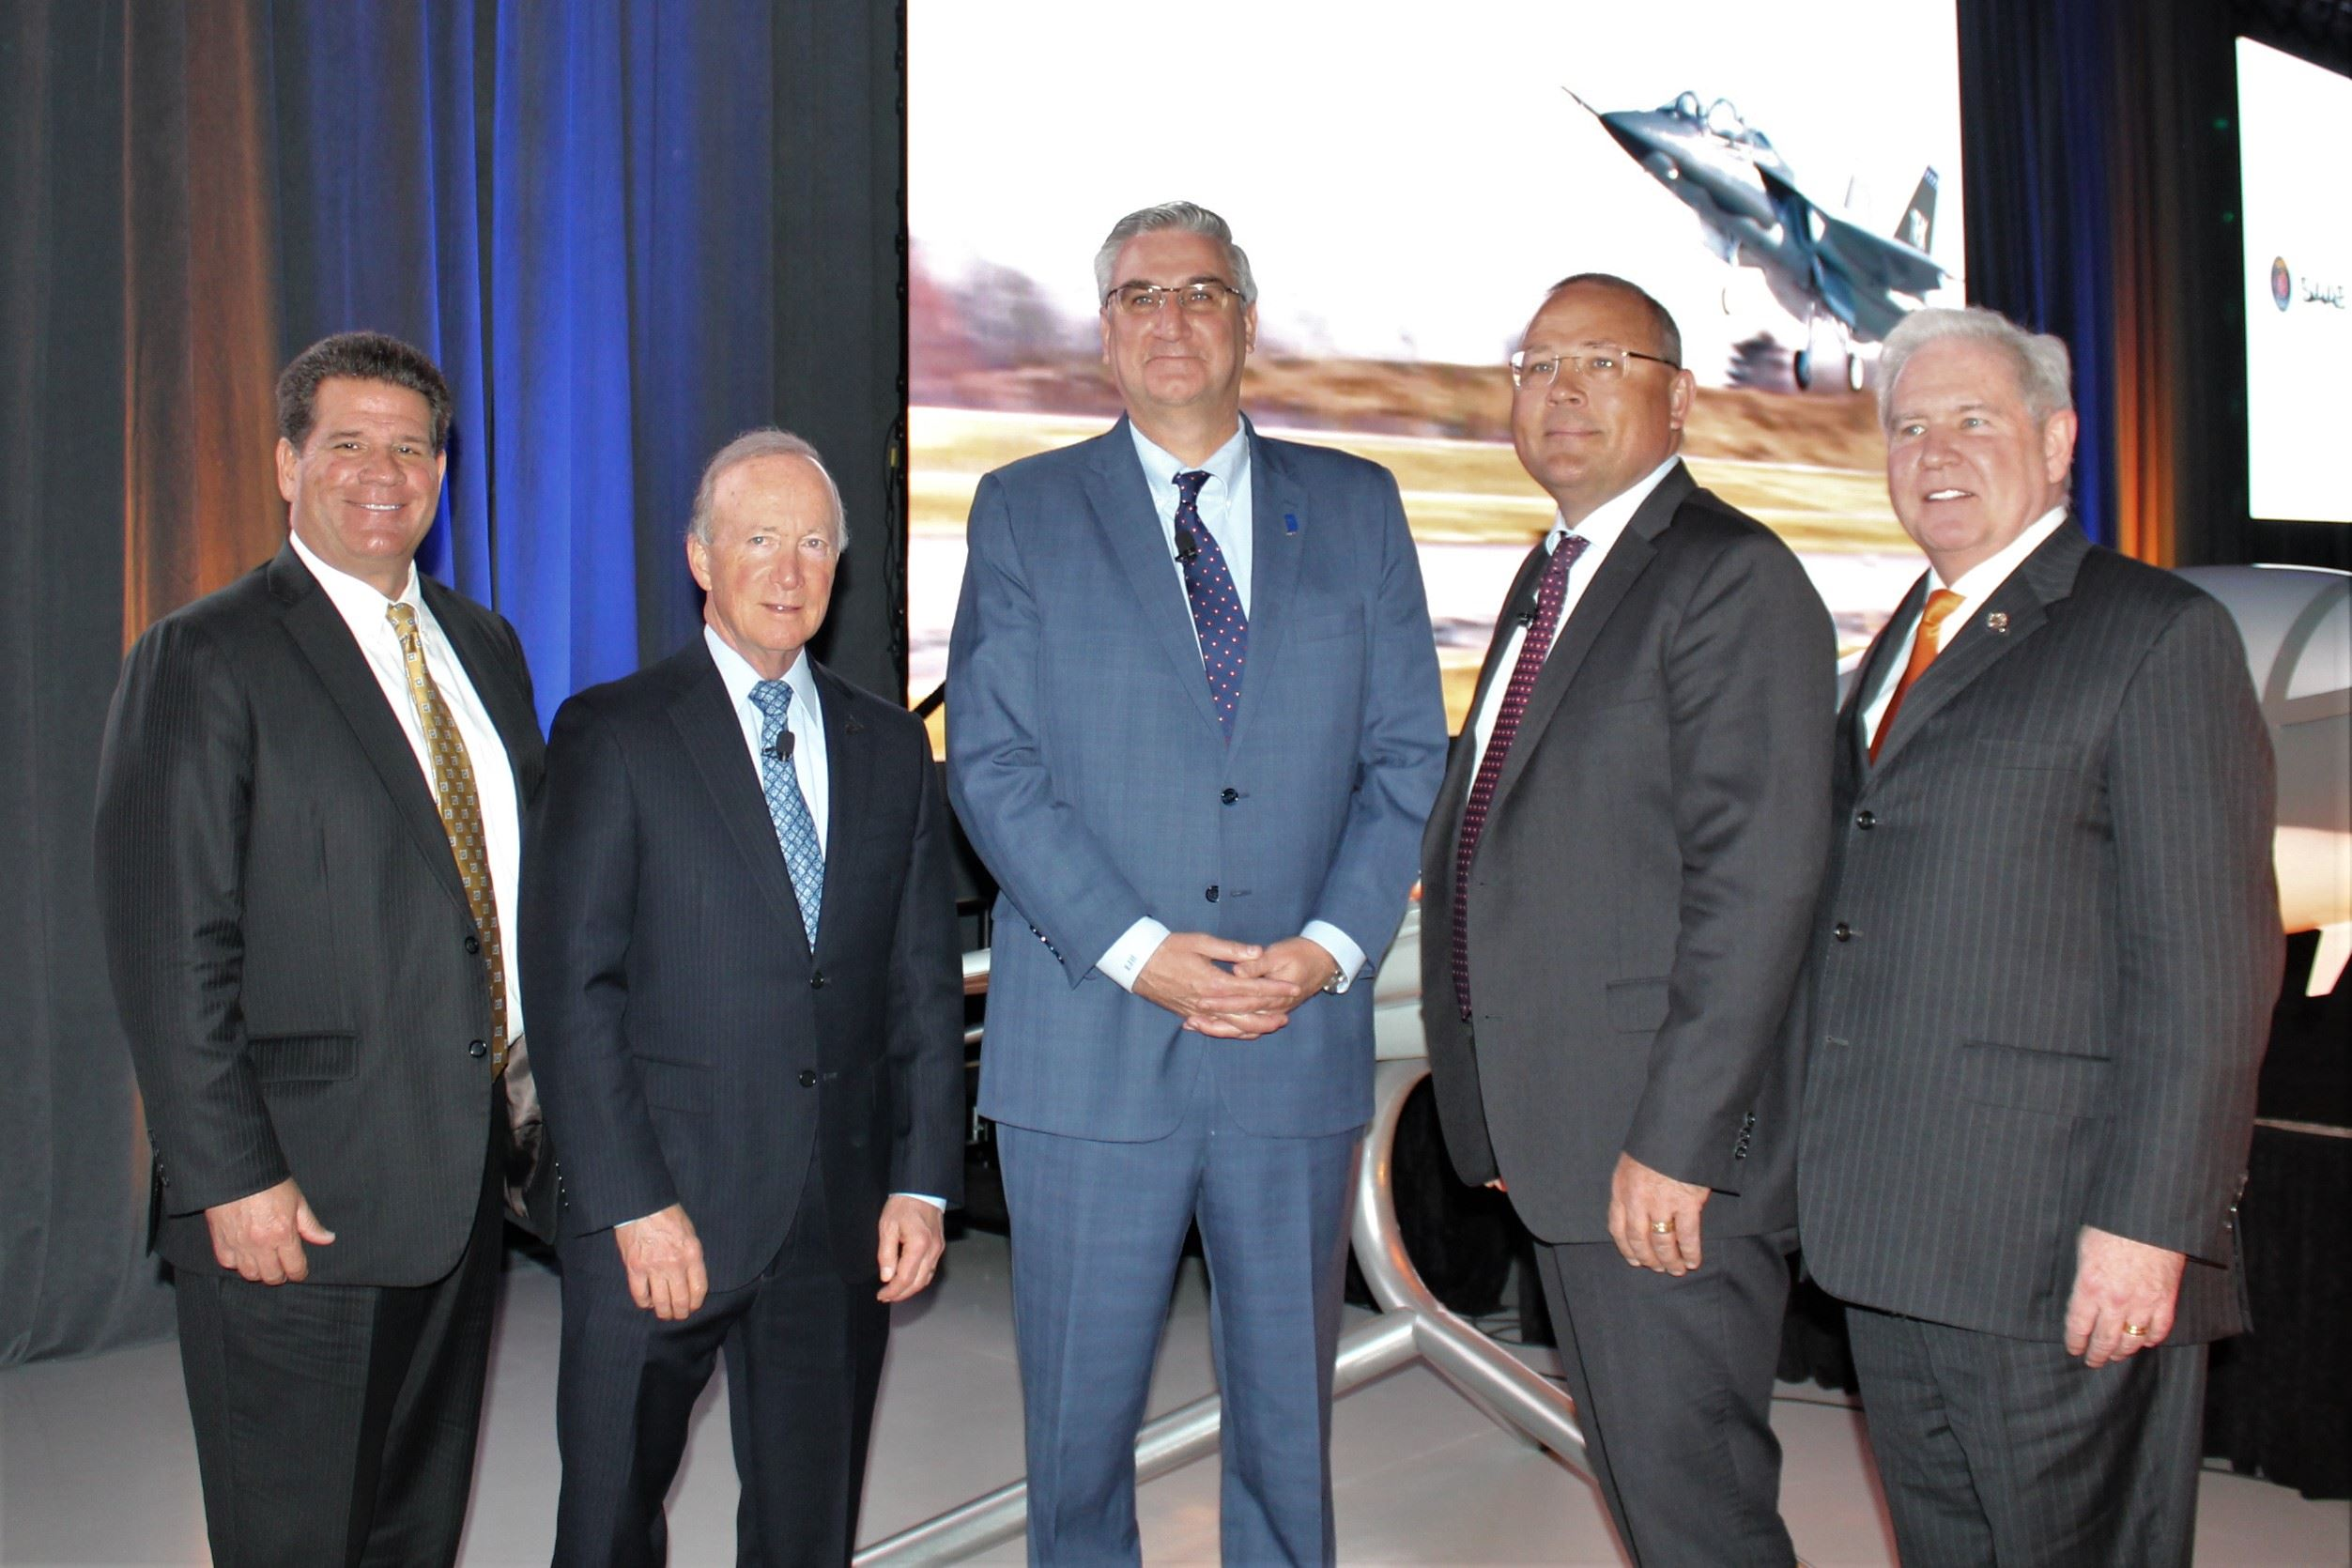 Mayor Roswarski, Purdue President Mitch Daniels, and Governor Eric Holcomb with Saab executives